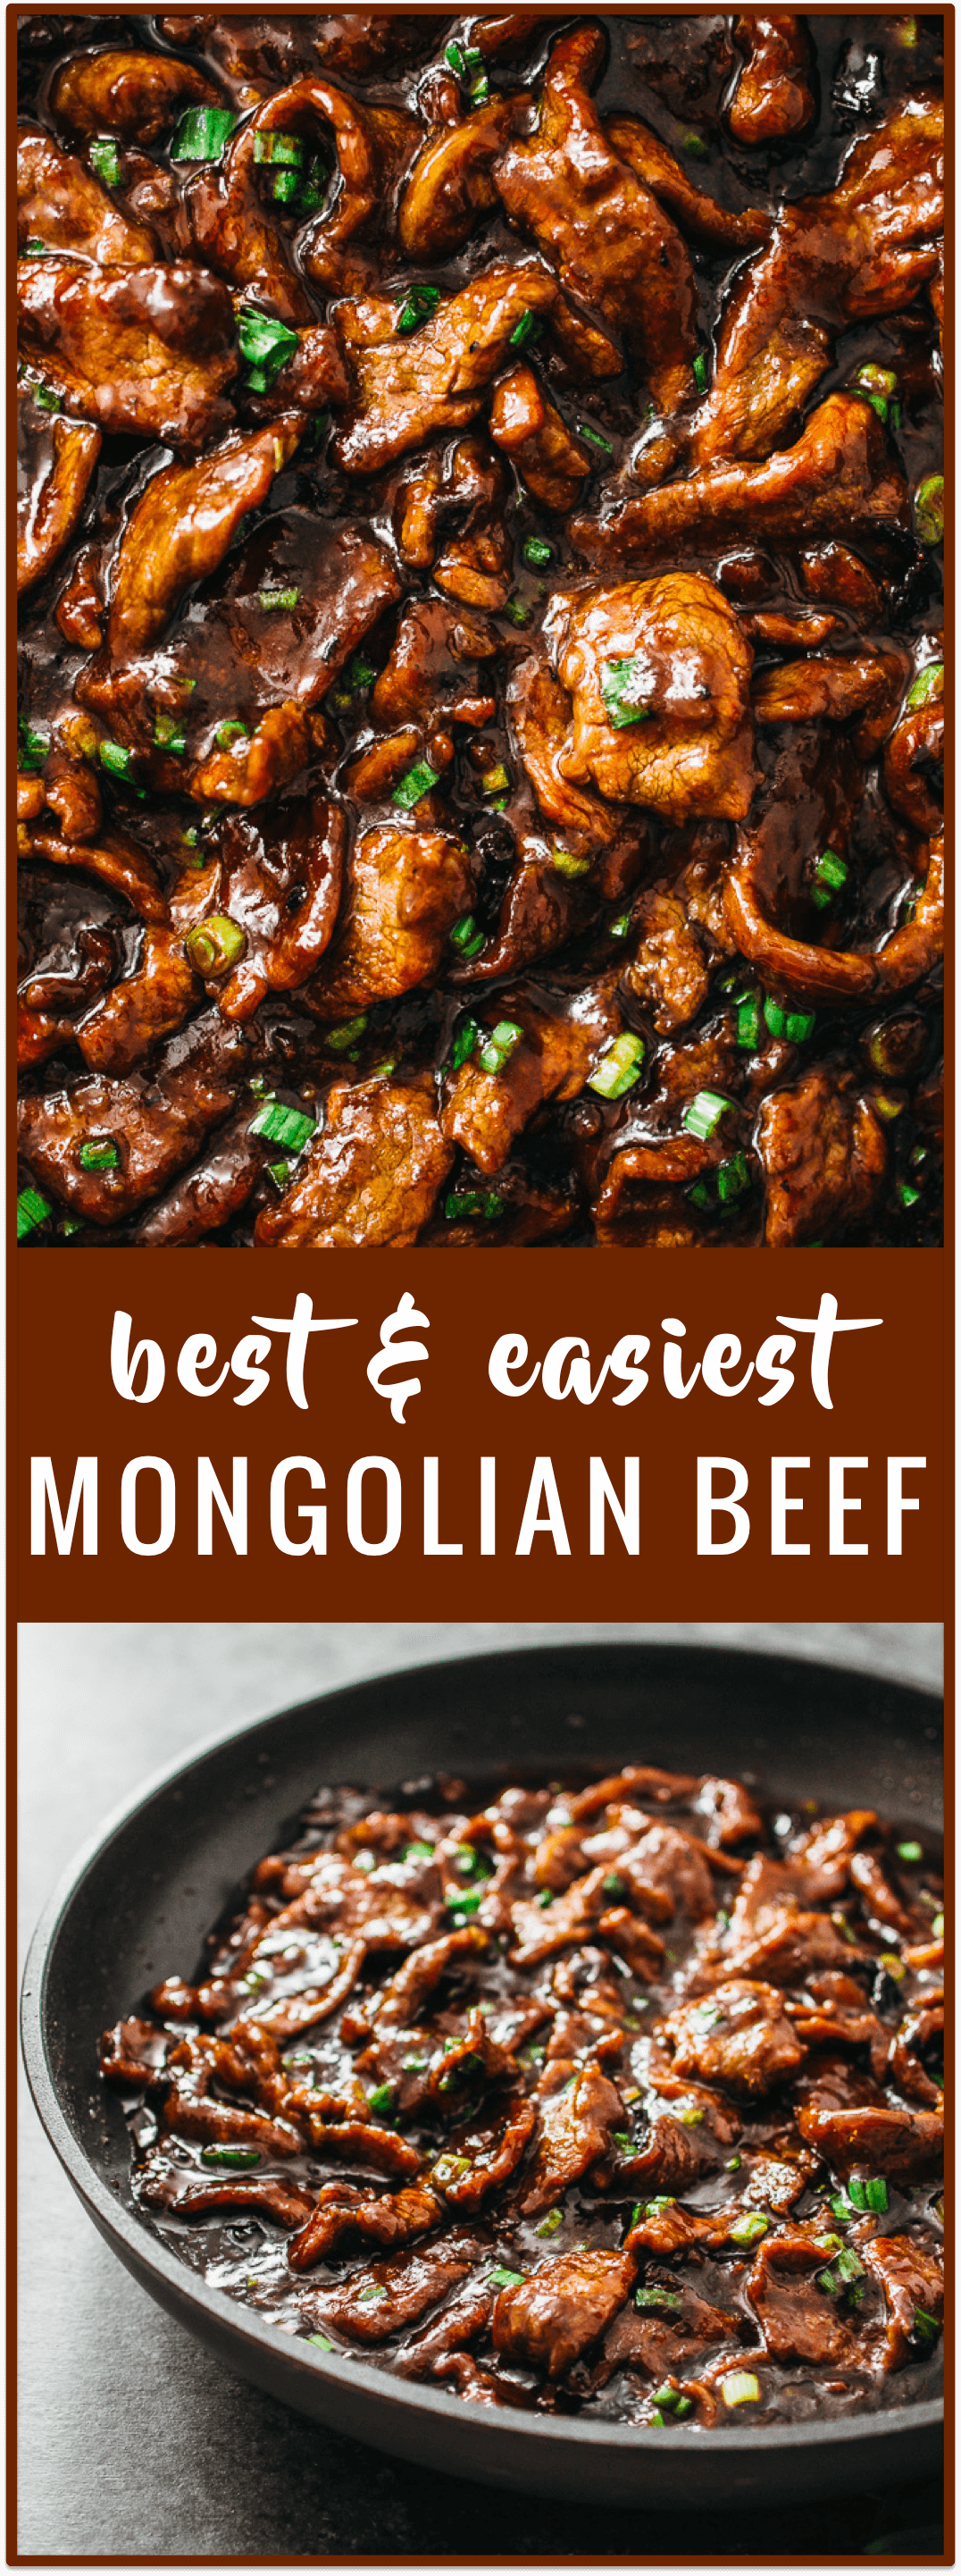 Best Mongolian beef: easy, authentic, and fast 15-minute stir-fry recipe with tender beef slices and a bold sticky sauce! spicy, steamed rice, noodles, pf changs, tacos, healthy, ramen, mongolian beef and broccoli, crispy, easy, simple, recipe, dinner, sauce, bowl, authentic, gluten free, marinade, 30 minute, fast, 15 minute, best, sides, panda express, chinese, copycat, stirfry, sirloin, quick, cooking light, rice, flank steak, tasty #beef #recipe video. #marinadeforbeef